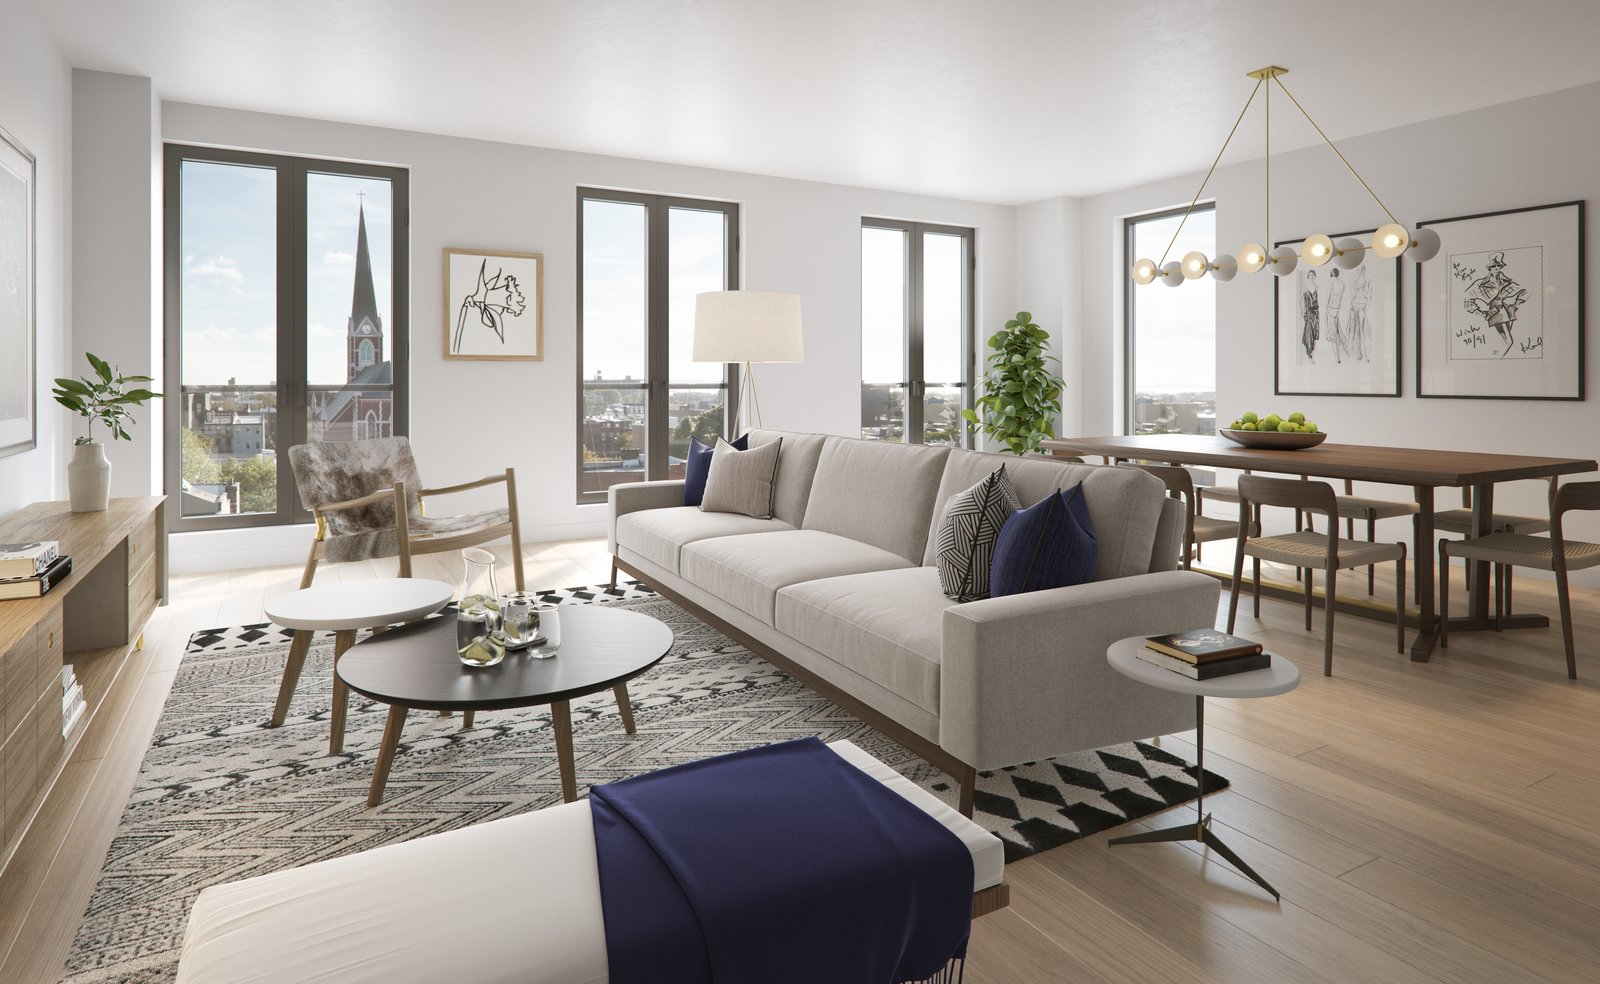 5 Easy Tips From Modern Condos For Creating A Scandinavian Inspired Interior